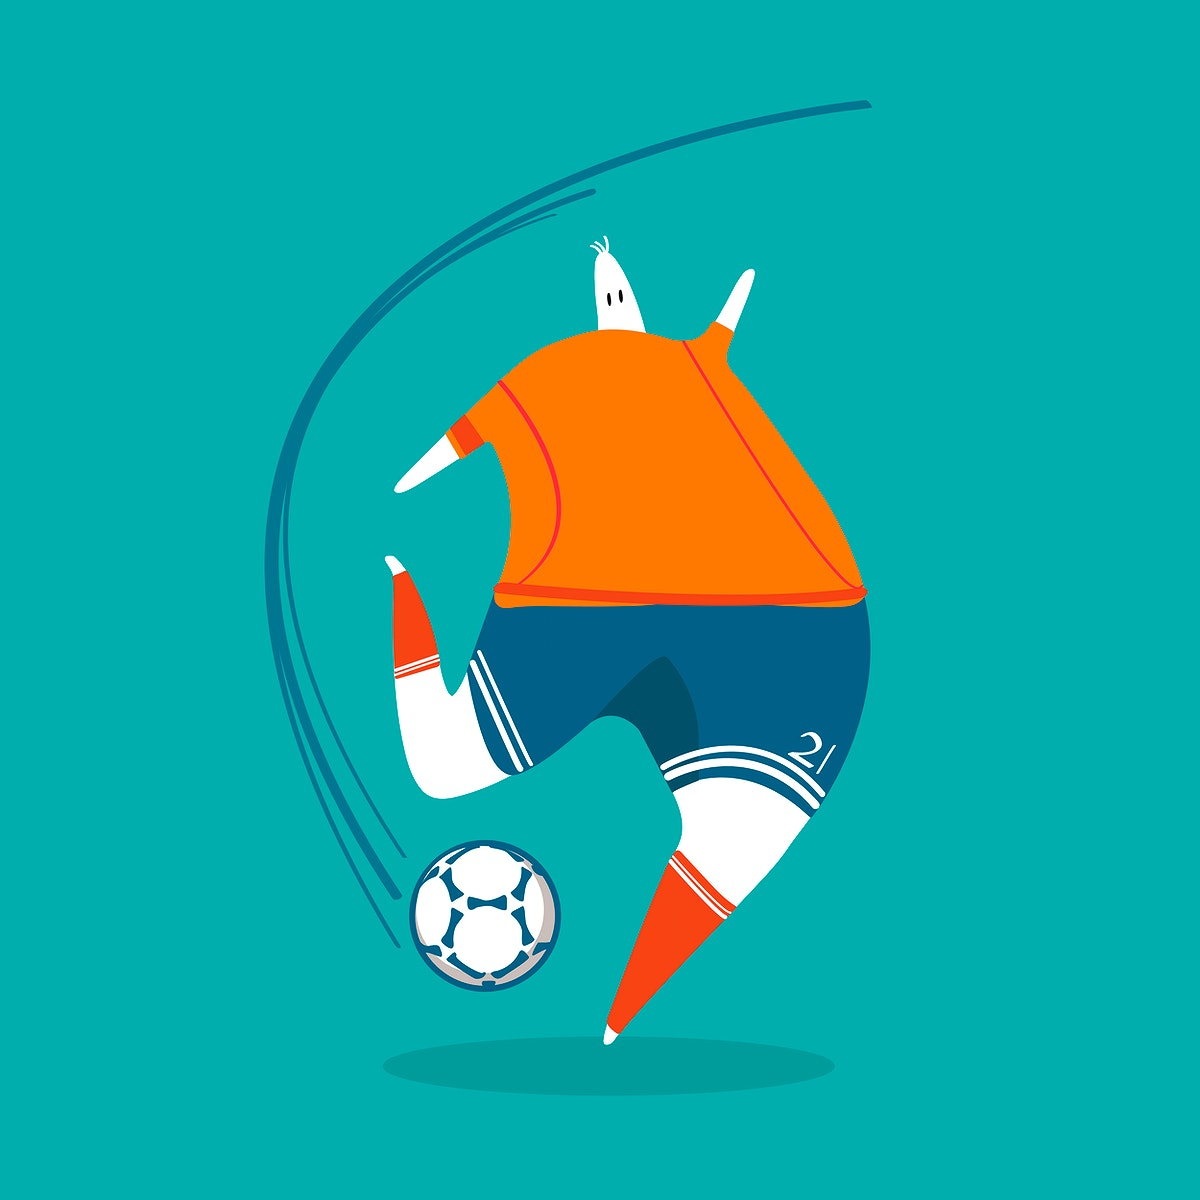 Character illustration of a soccer player